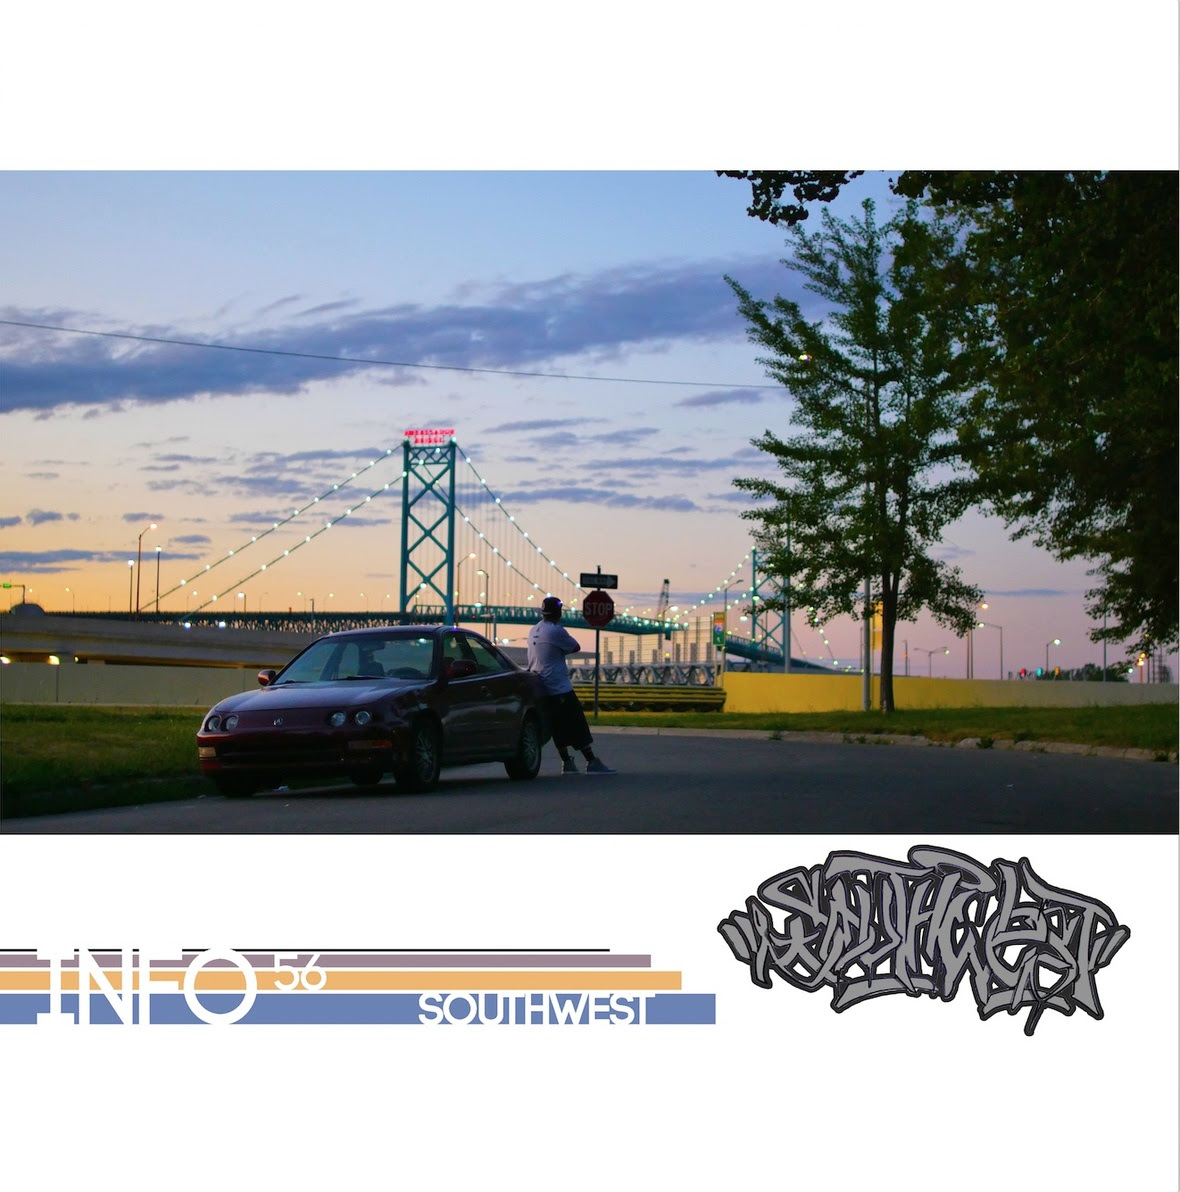 info - inner city mexican (hiphop munro) latin hiphop